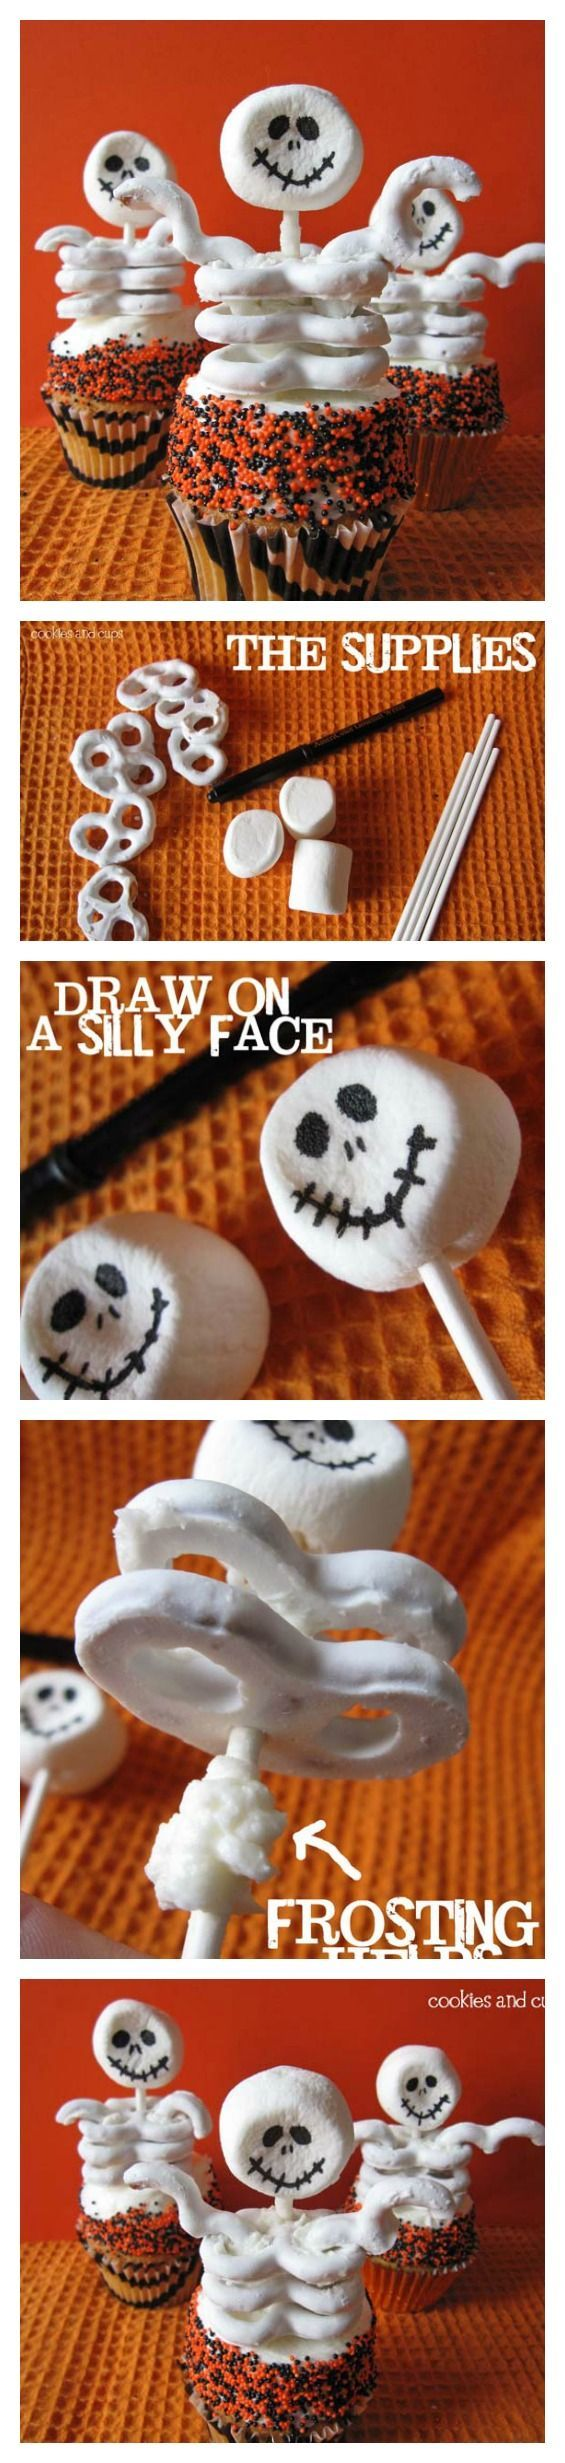 These skeleton cupcakes are not only a fun baking project, but actually involve a little bit of crafting too! Definitely something the whole family can do together. #Halloween